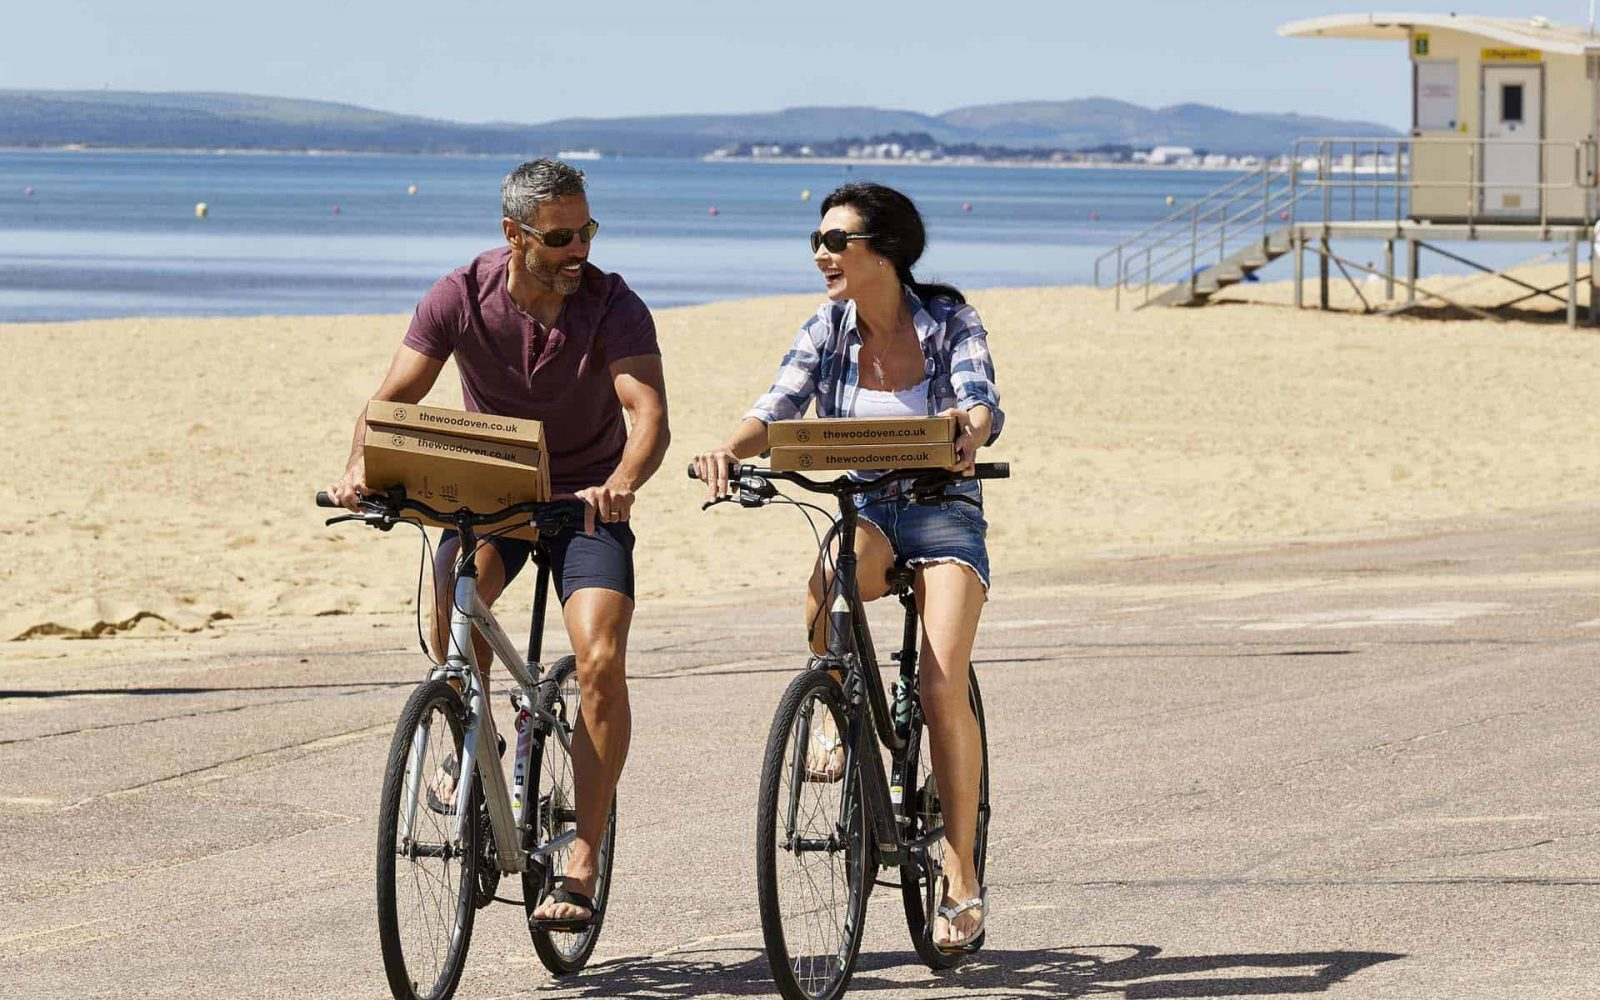 A couple cycling along the seafront with pizzas on a sunny day at the beach